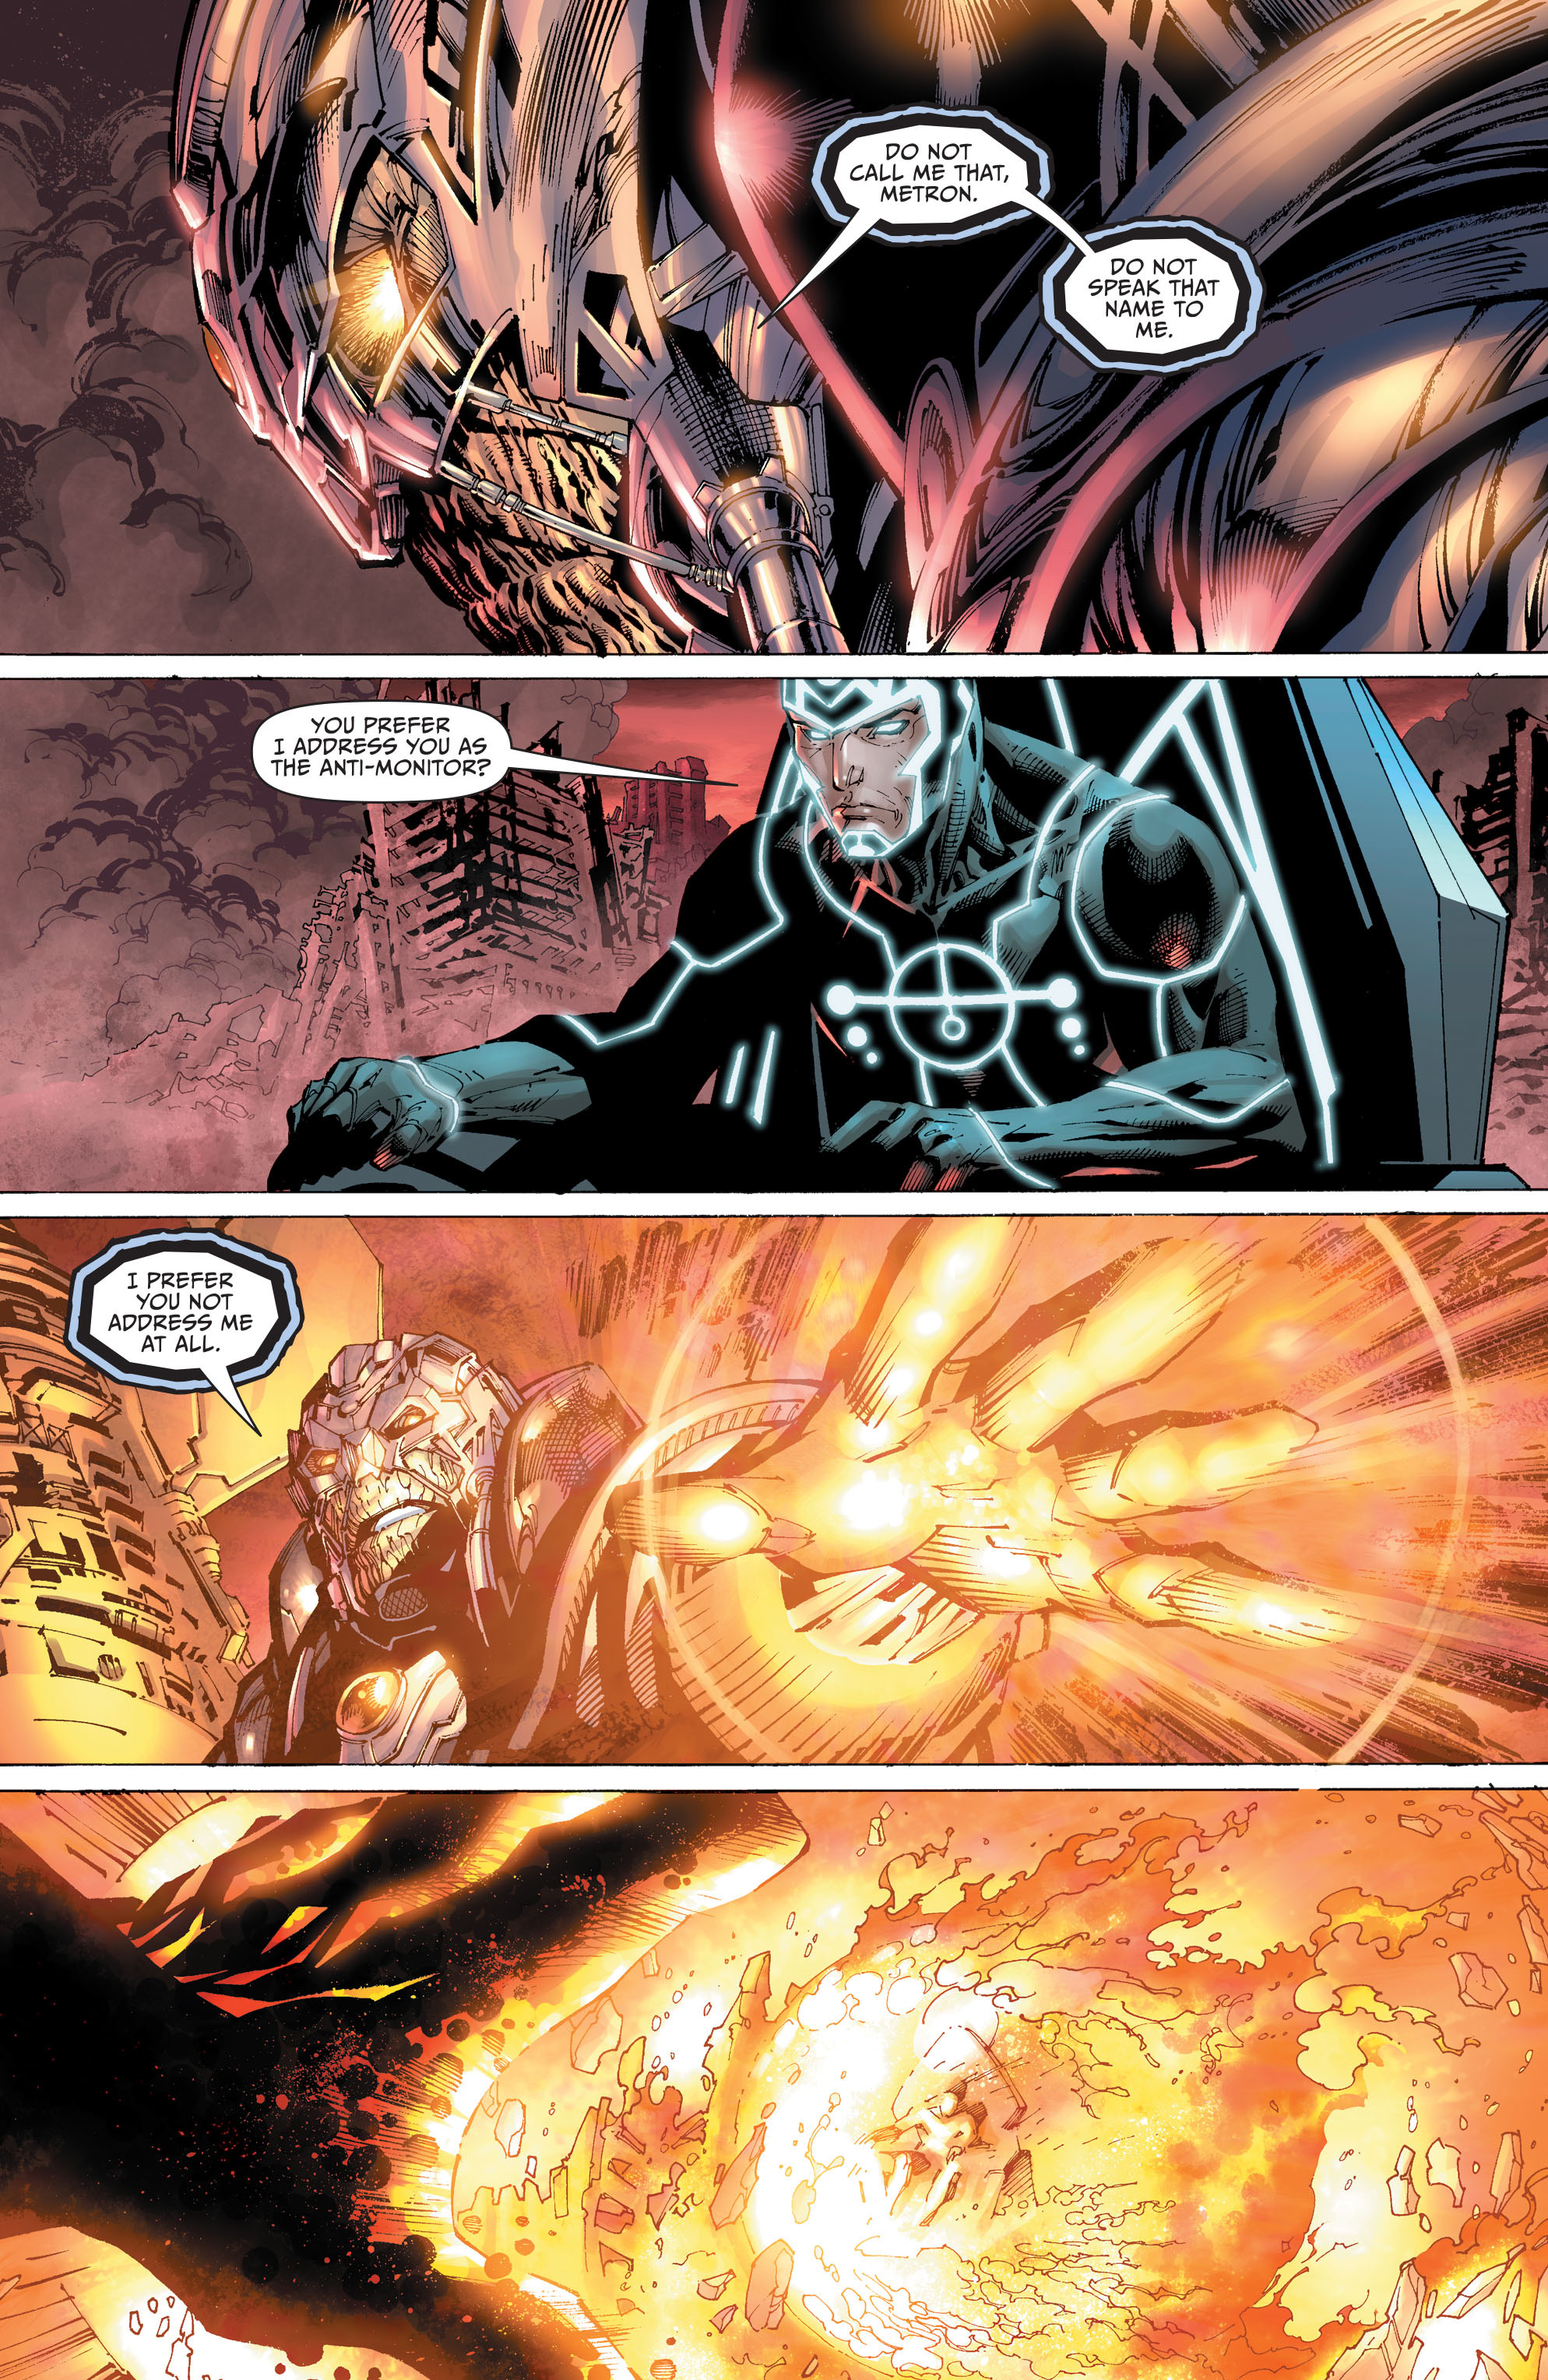 Justice League #40 Spoilers Darkseid War 2 ...